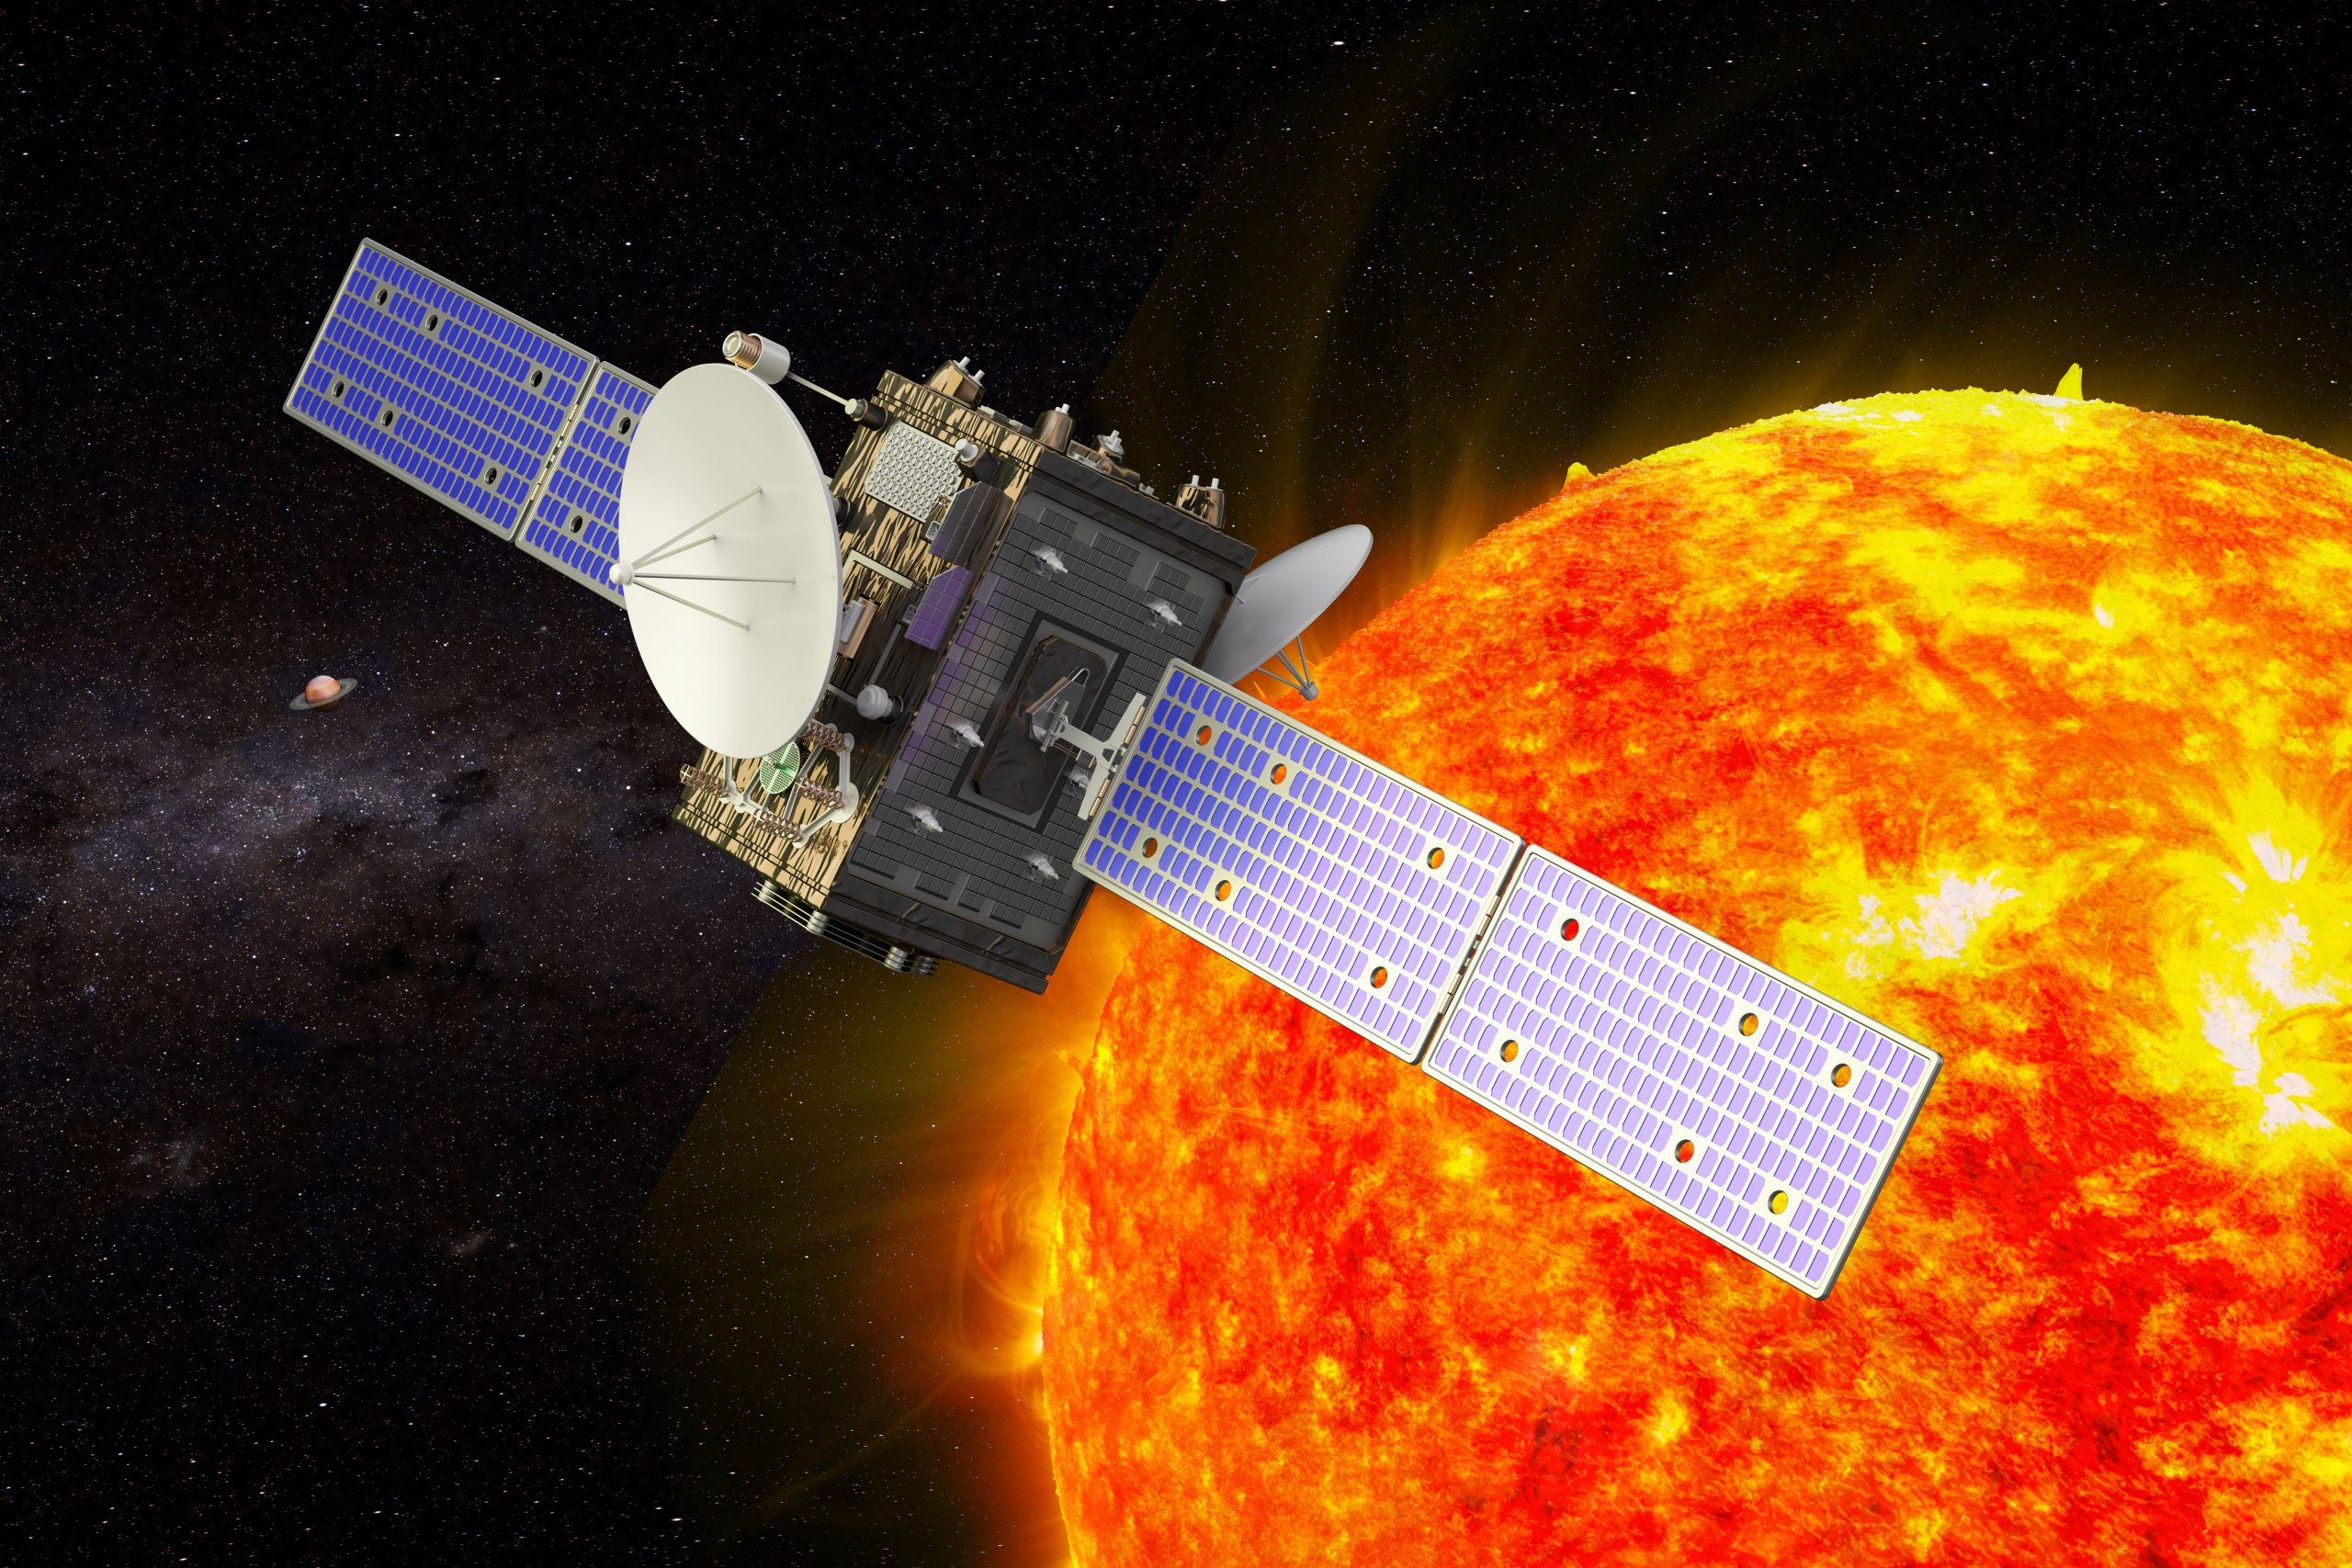 Quantitative Scientific Solutions Awarded SBIR Contract by NASA